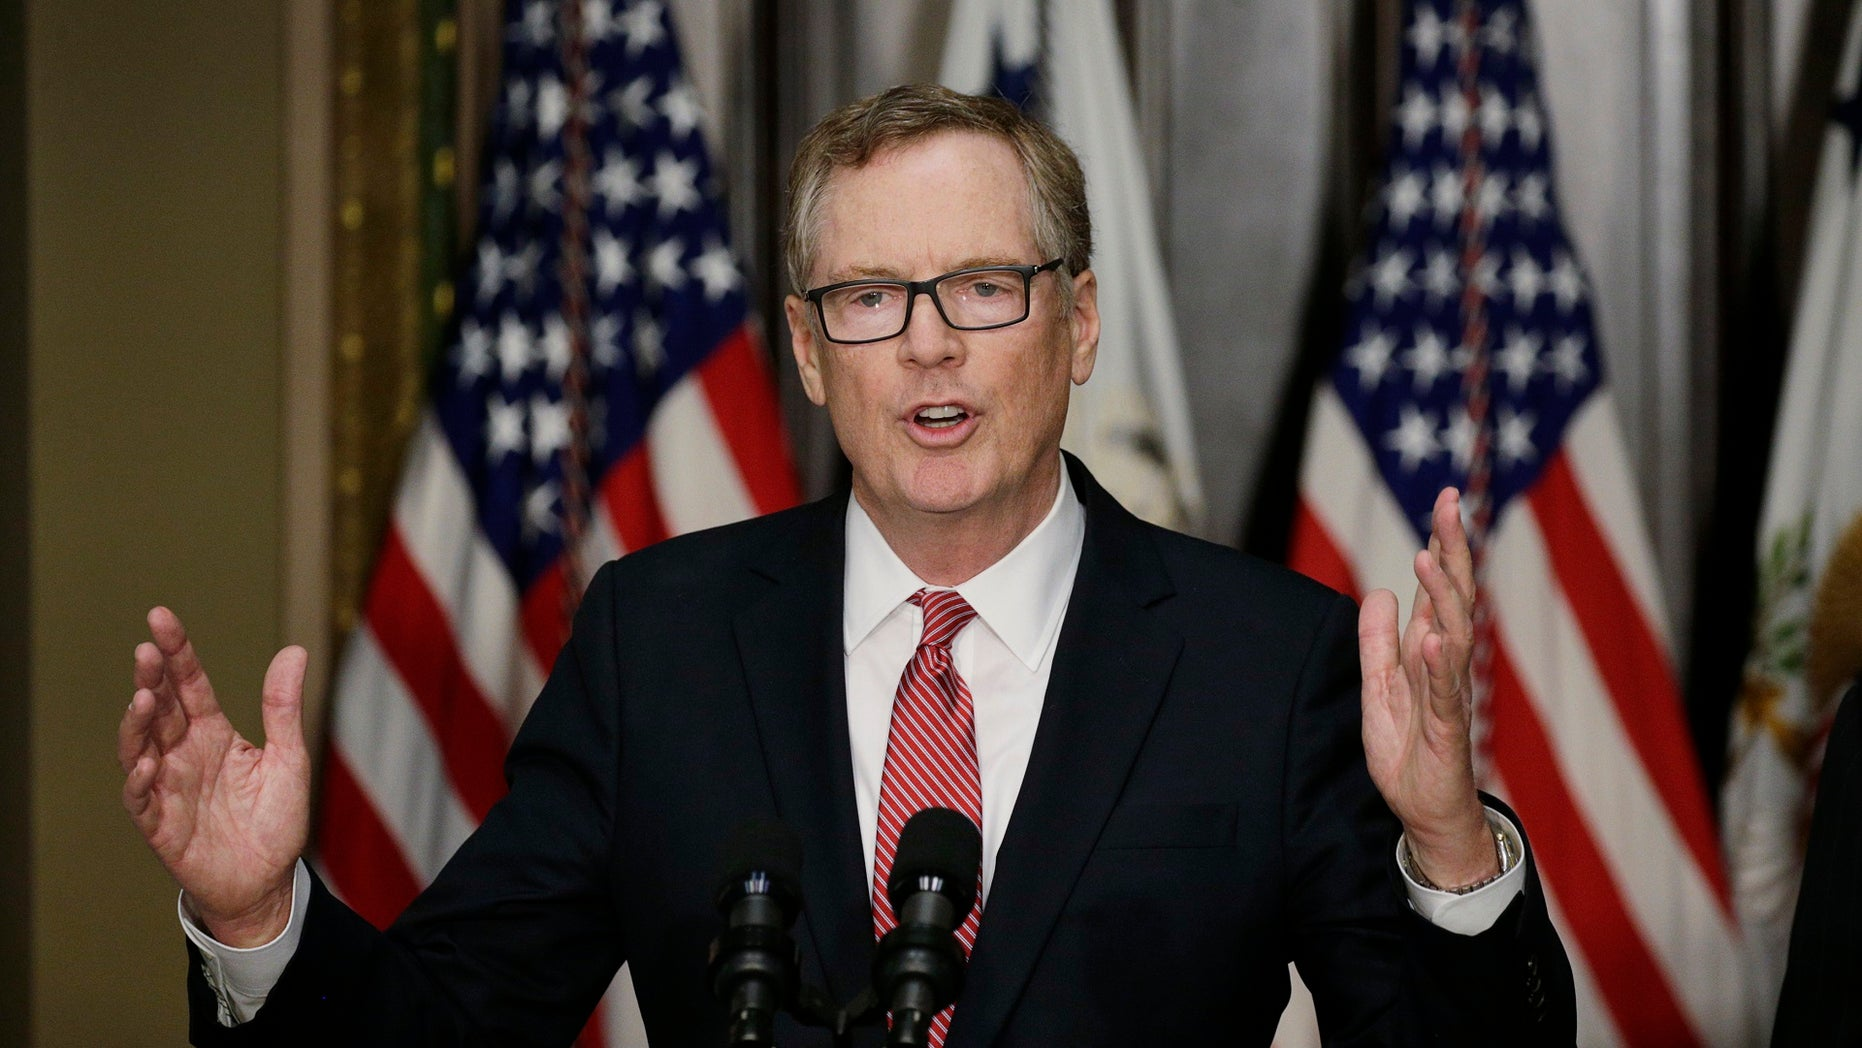 Robert Lighthizer also served as the deputy U.S. trade representative under the Reagan administration.